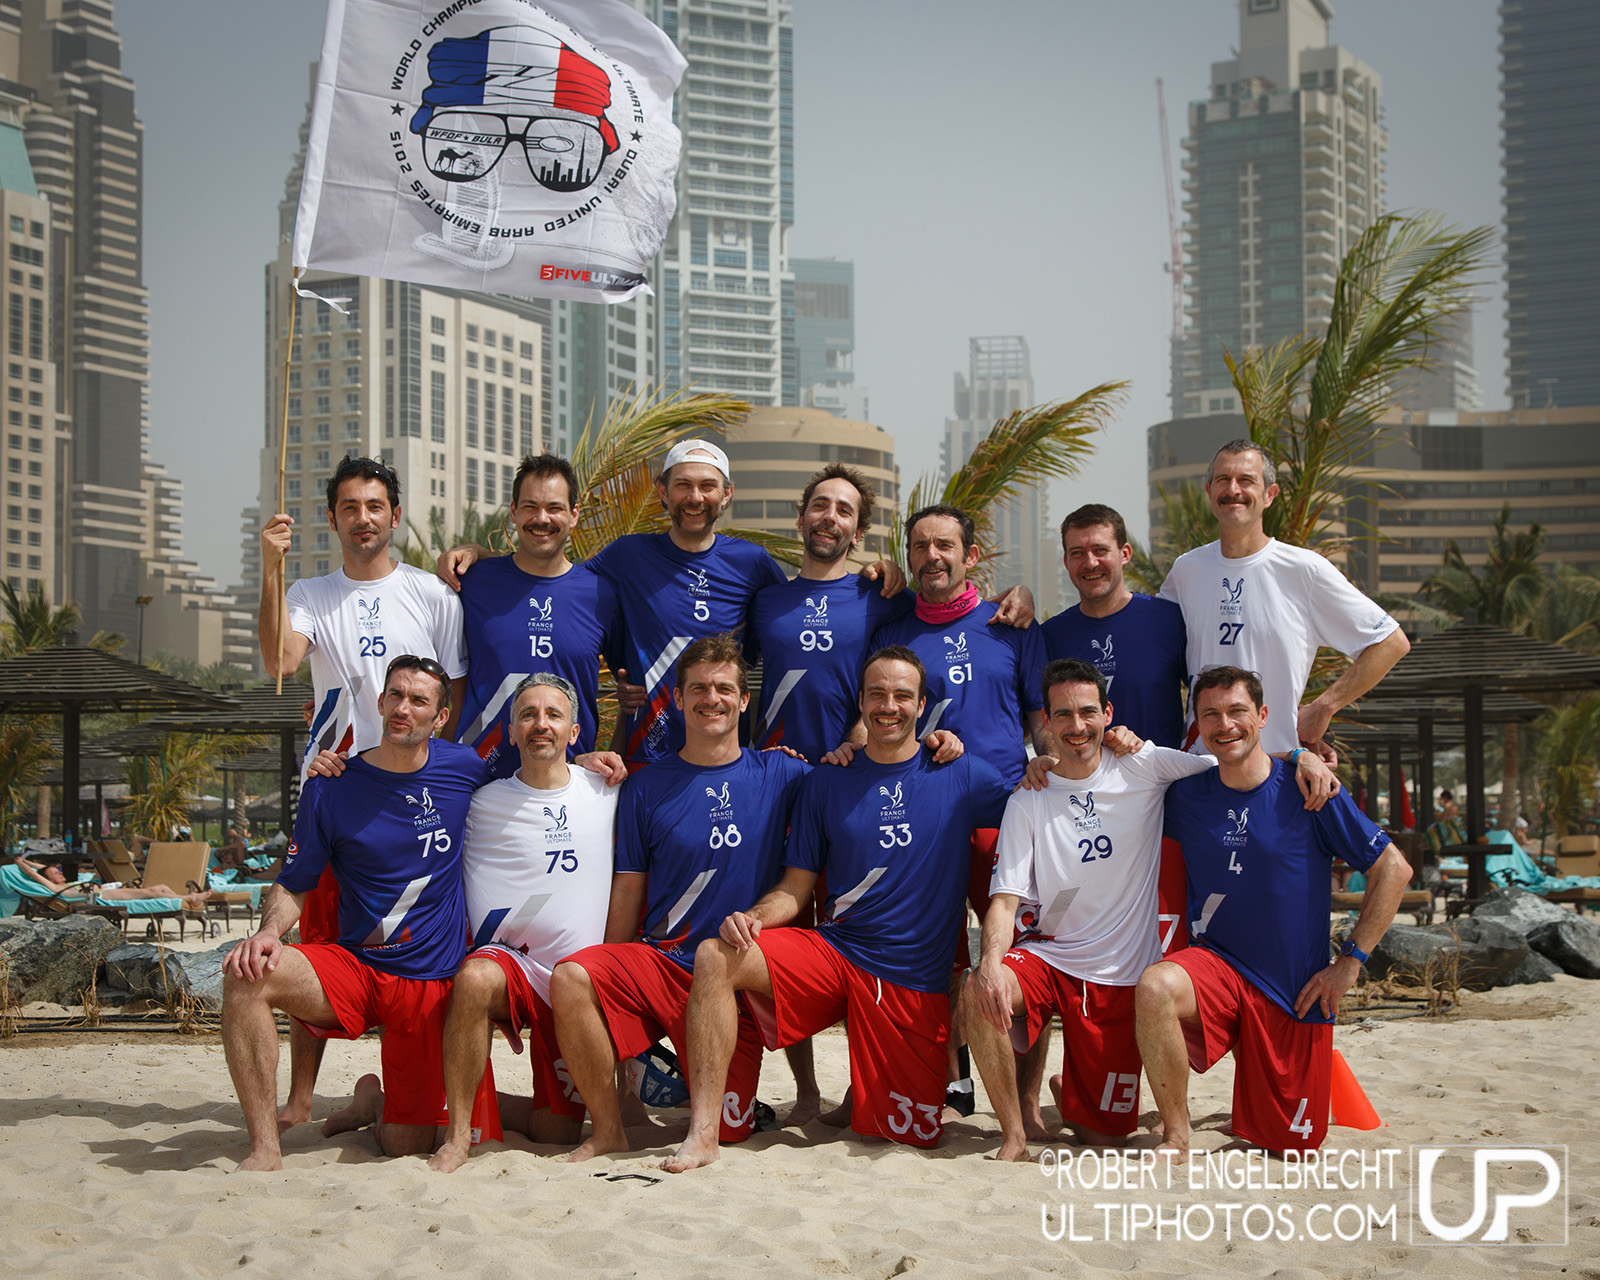 Team picture of France Grand Masters